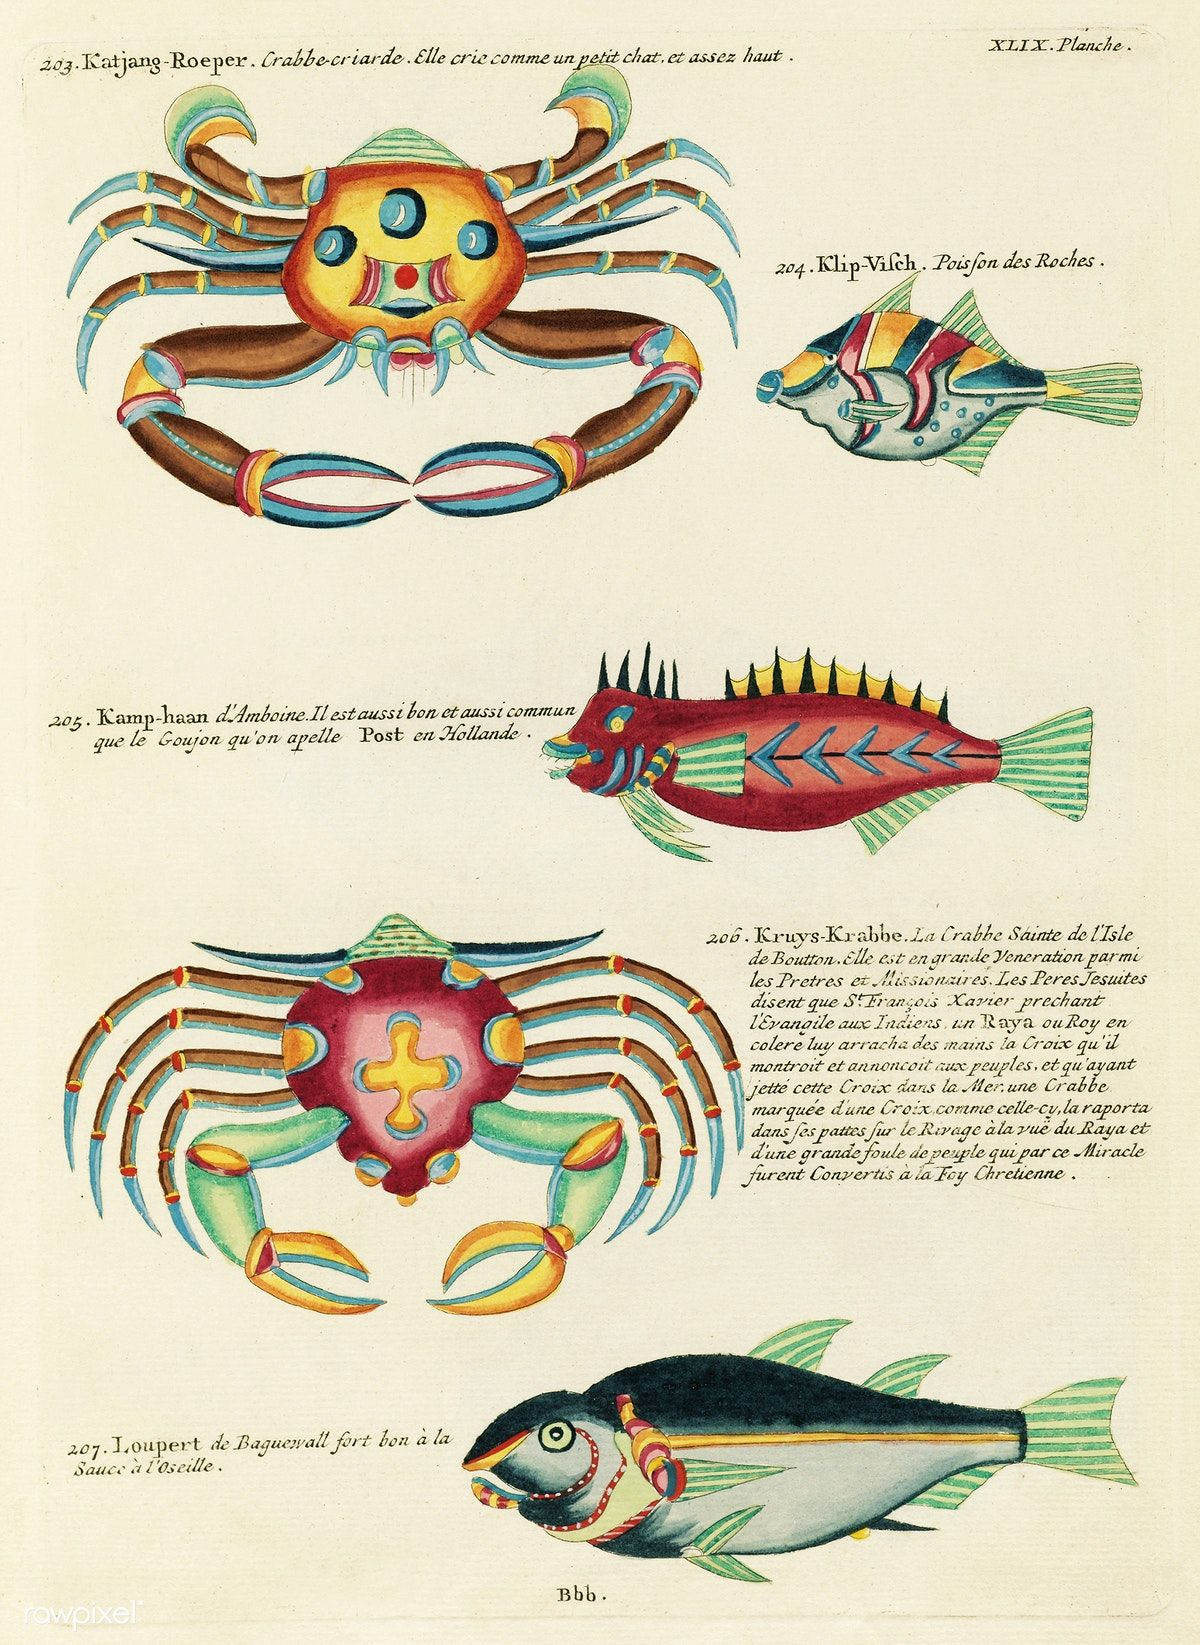 Colourful And Surreal Illustrations Of Fishes And Crabs Found In Moluccas Indonesia And The East In S By Louis Renard   From Histoire